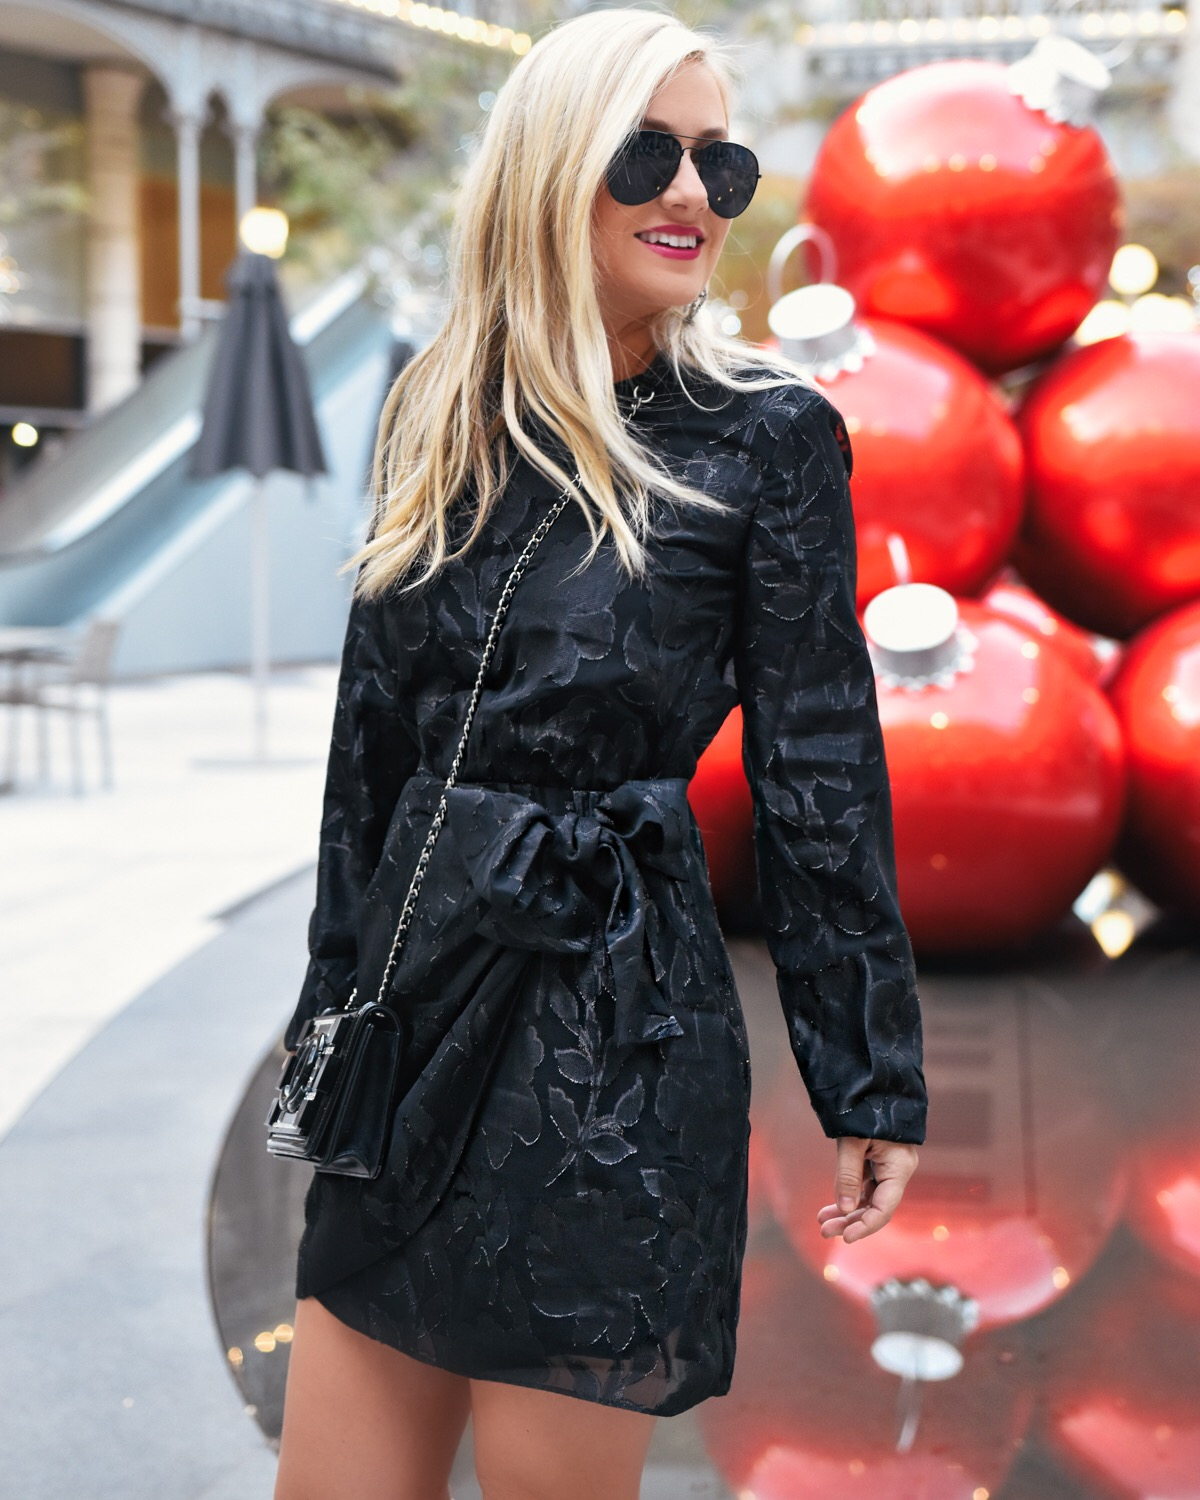 Holiday Dresses, LBD, Little Black Dress, Nordstrom Dresses, Holiday Black Dress, Black Dress under $150, Bardot Black Dress, Chanel Handbag